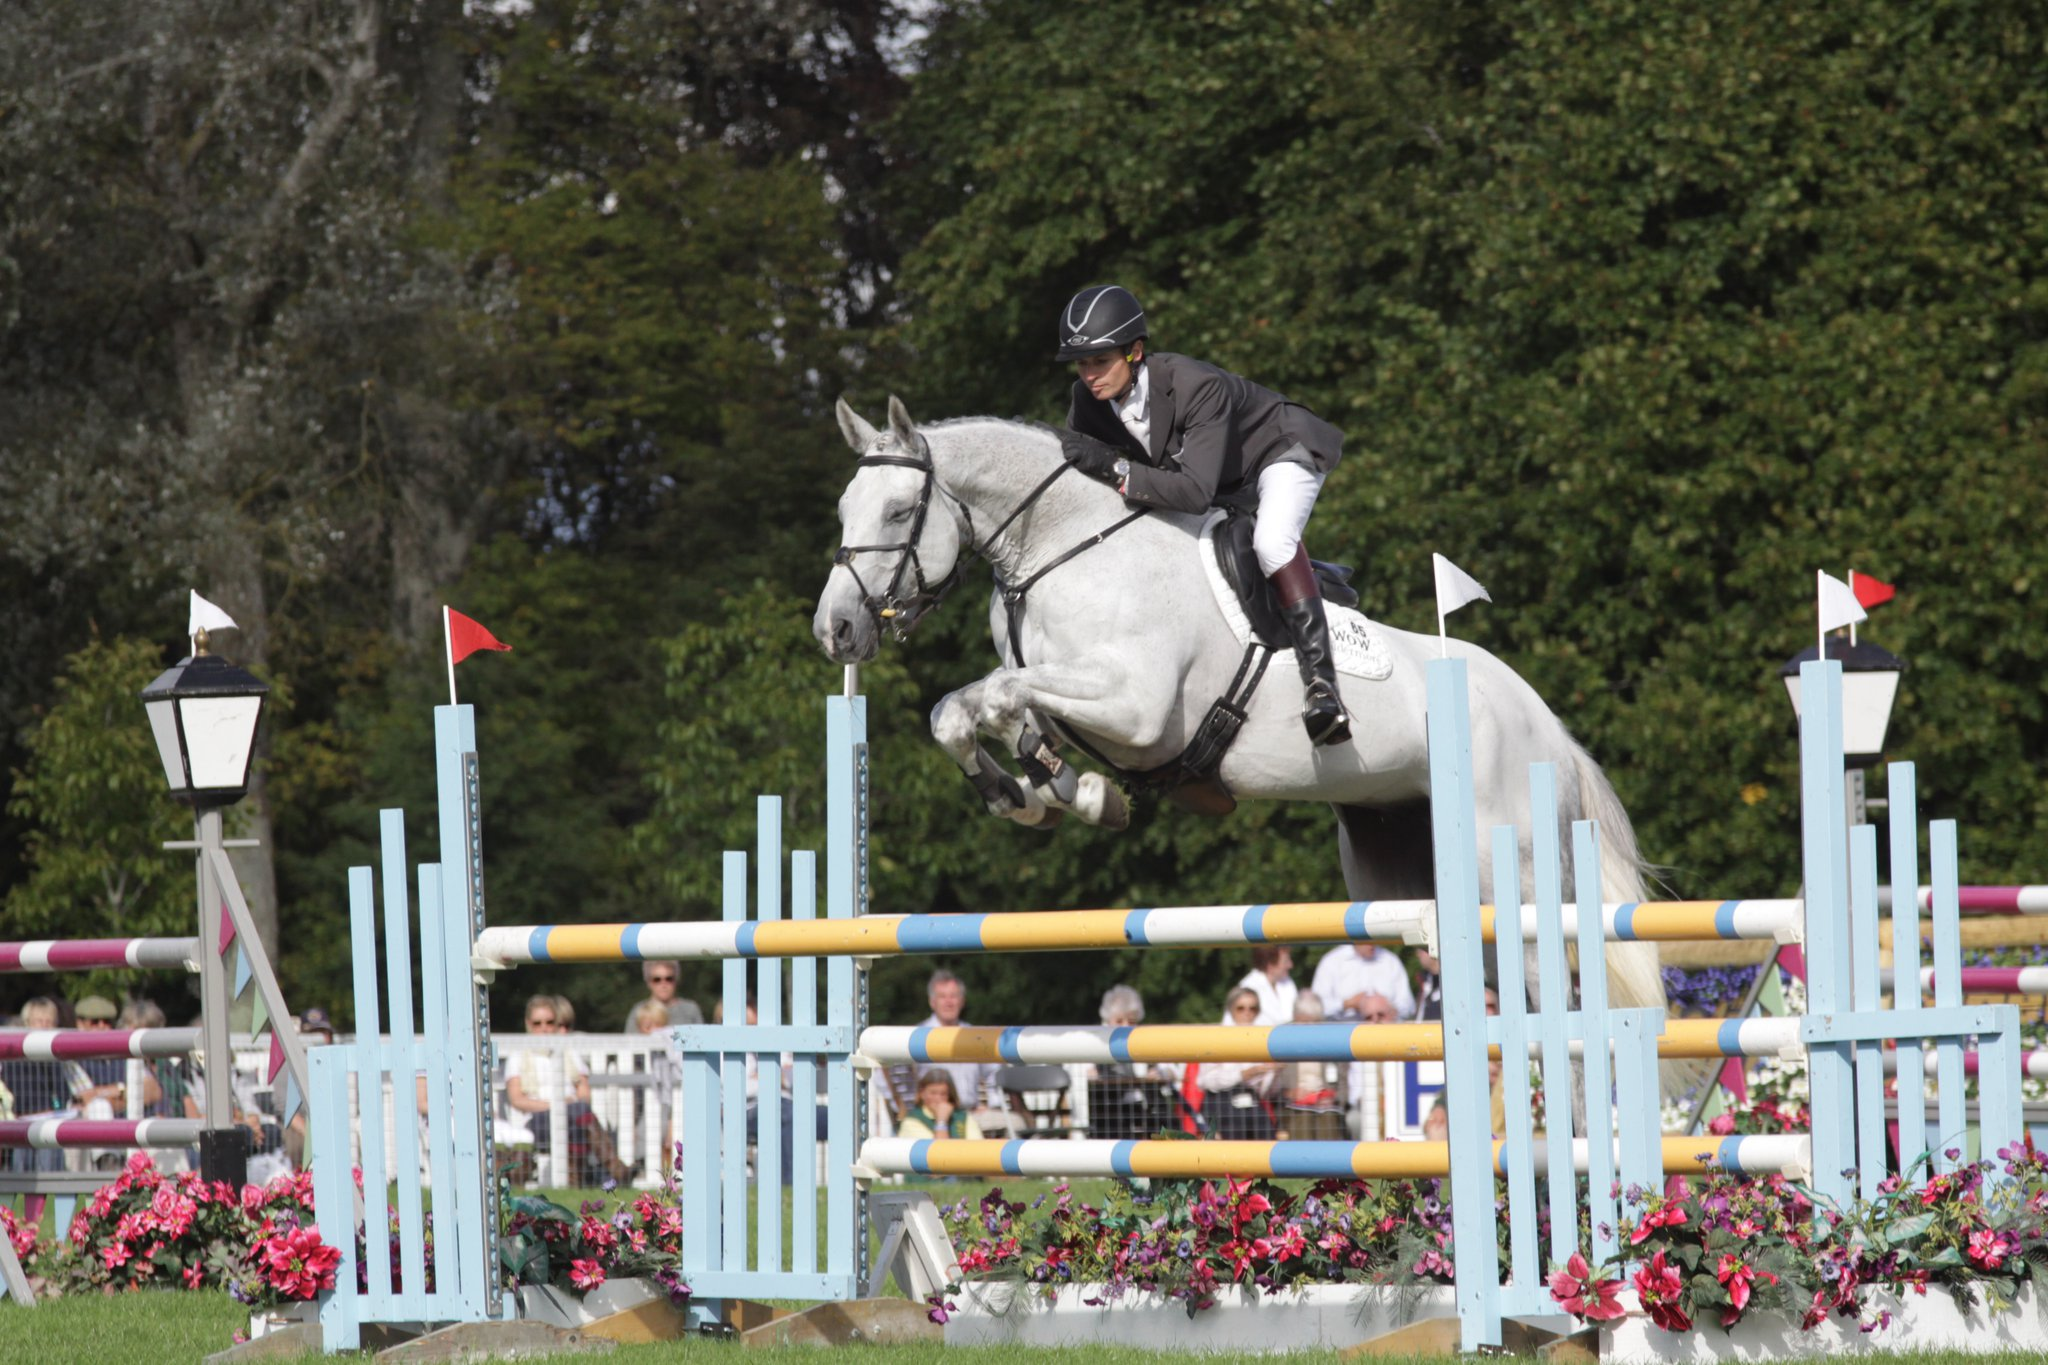 Francis Whittington, 2014 Eventing National Champion